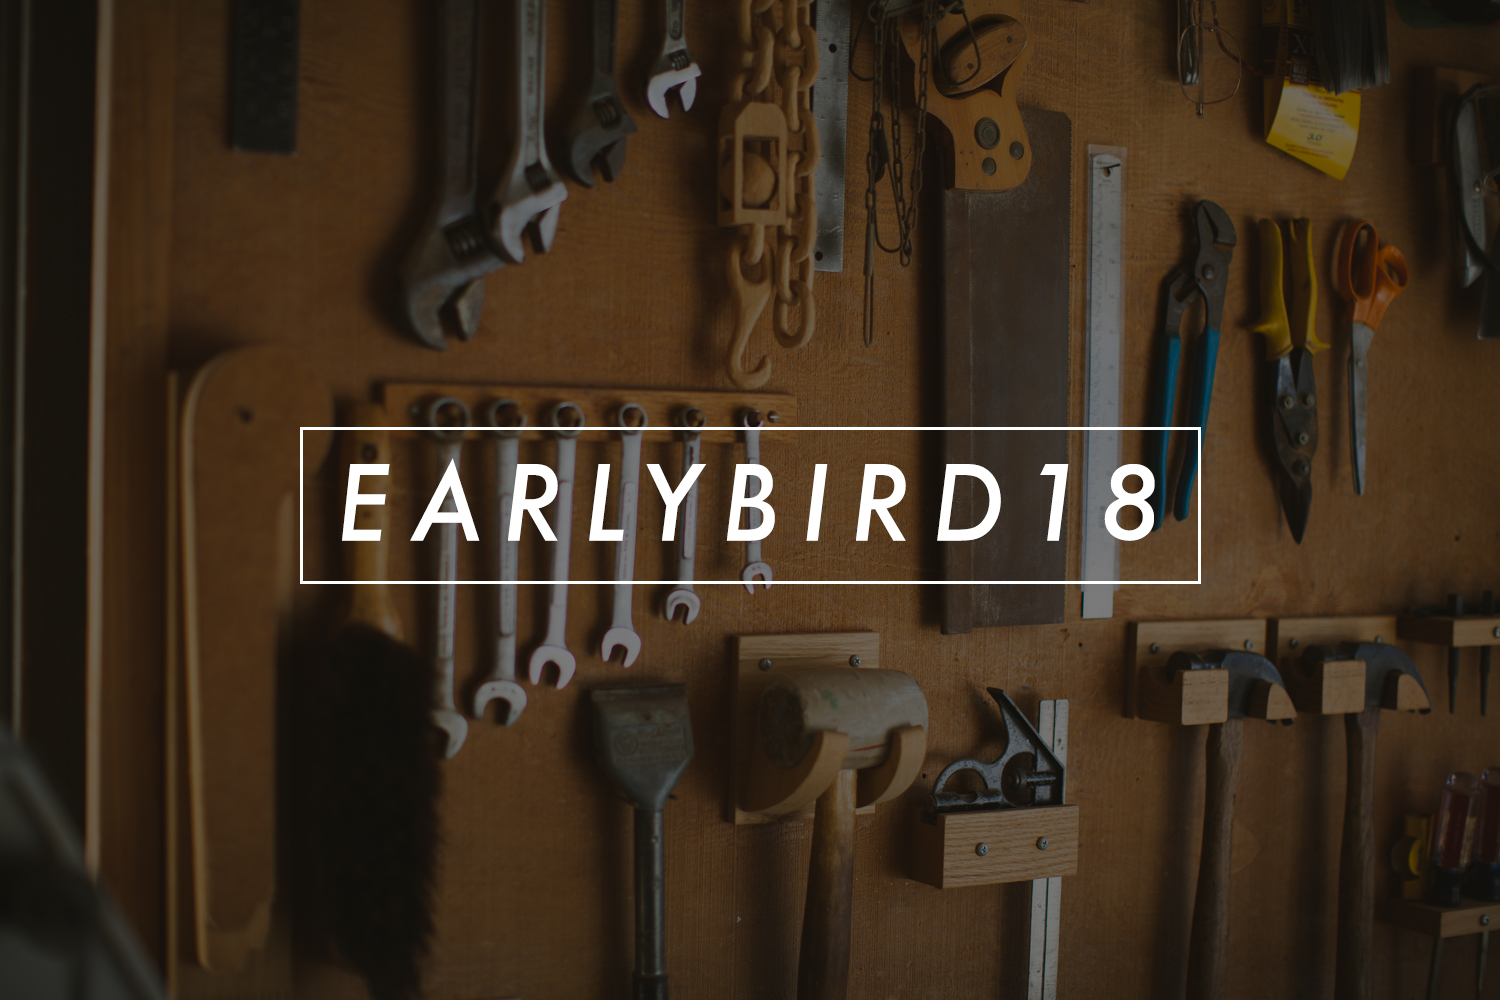 early_bird_18